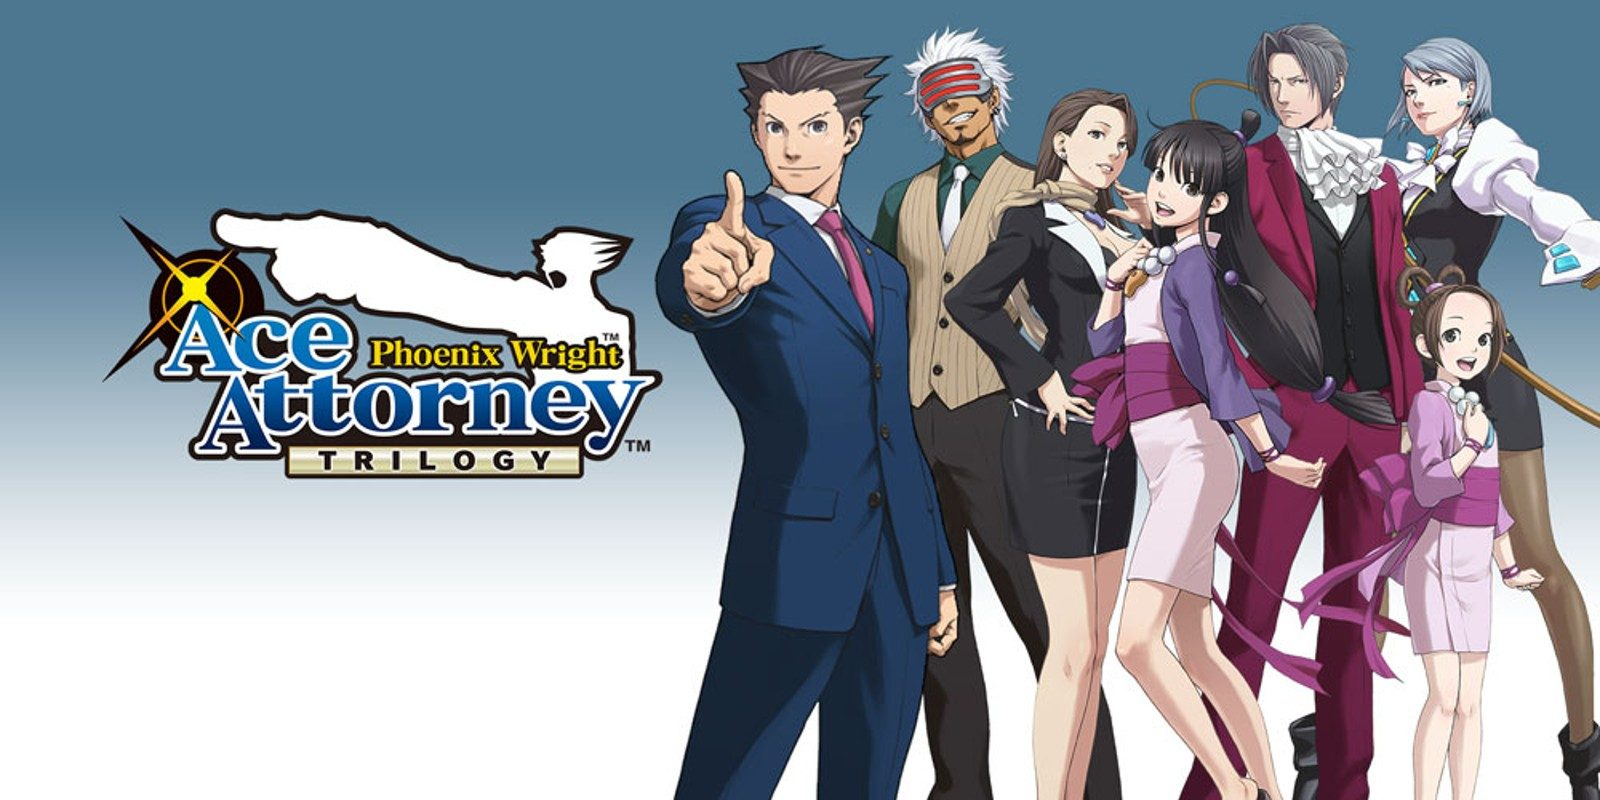 Phoenix Wright's Original Trilogy Goes Multi-Platform On All Major Consoles